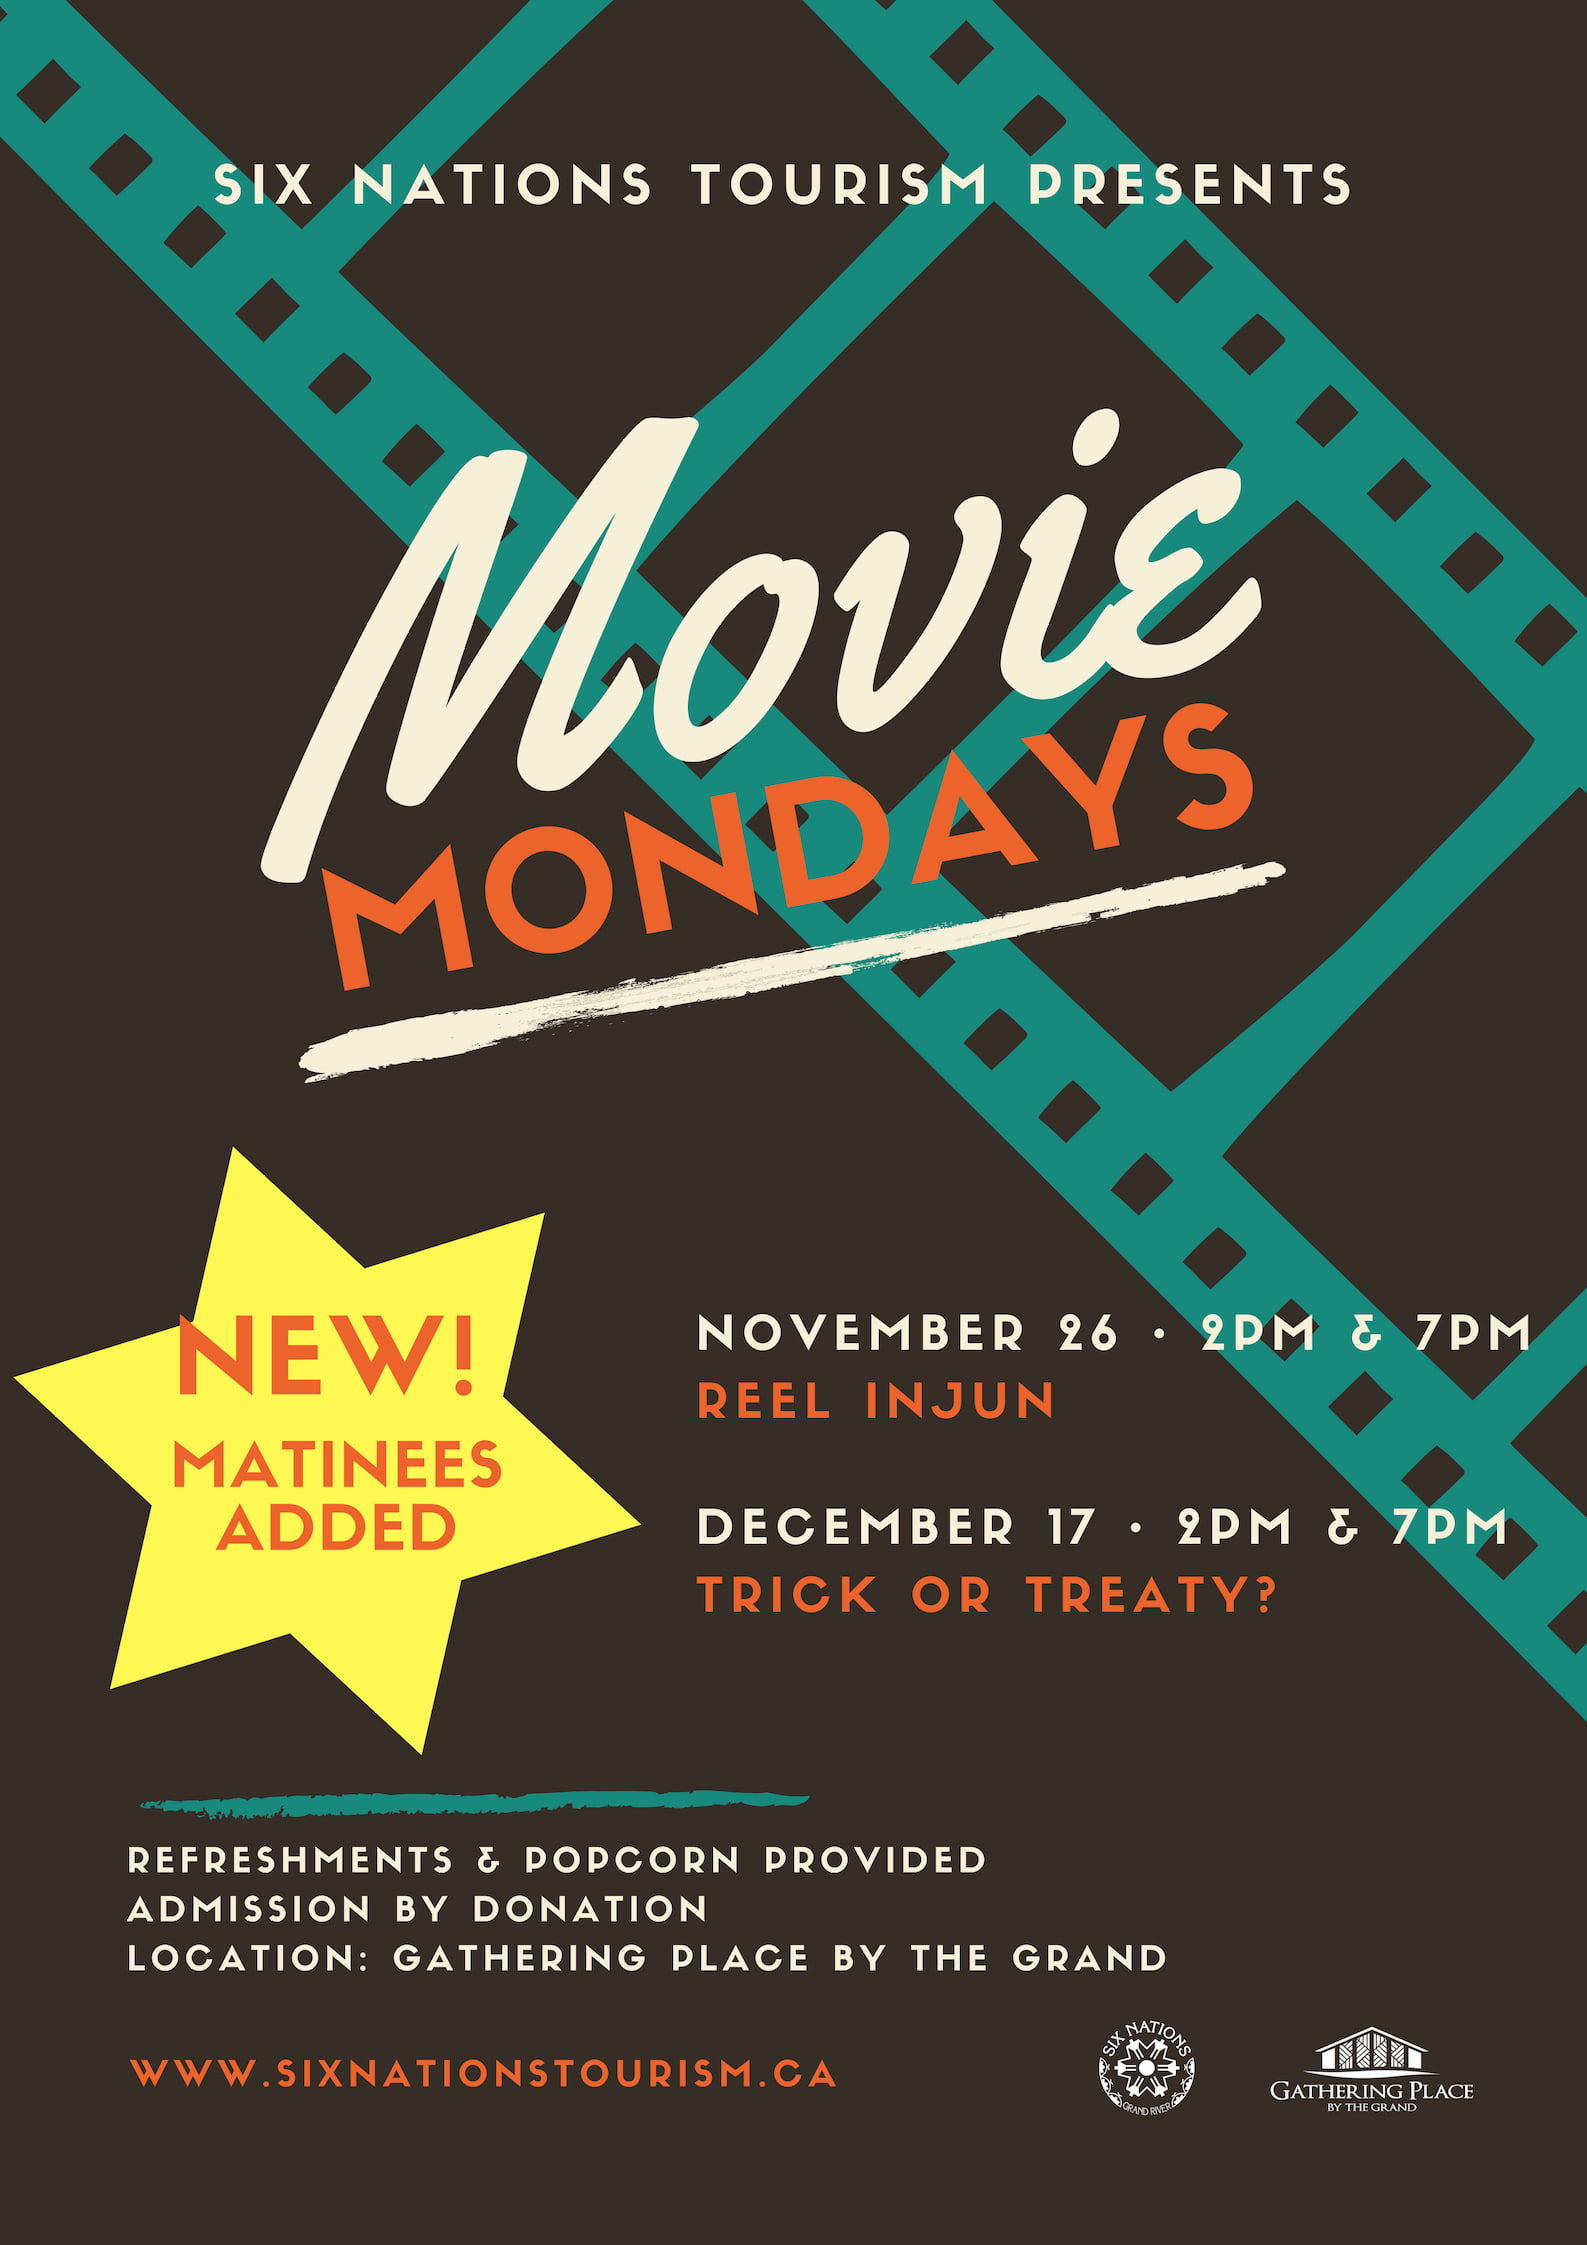 Six Nations Tourism Presents Movie Mondays Matinees Added